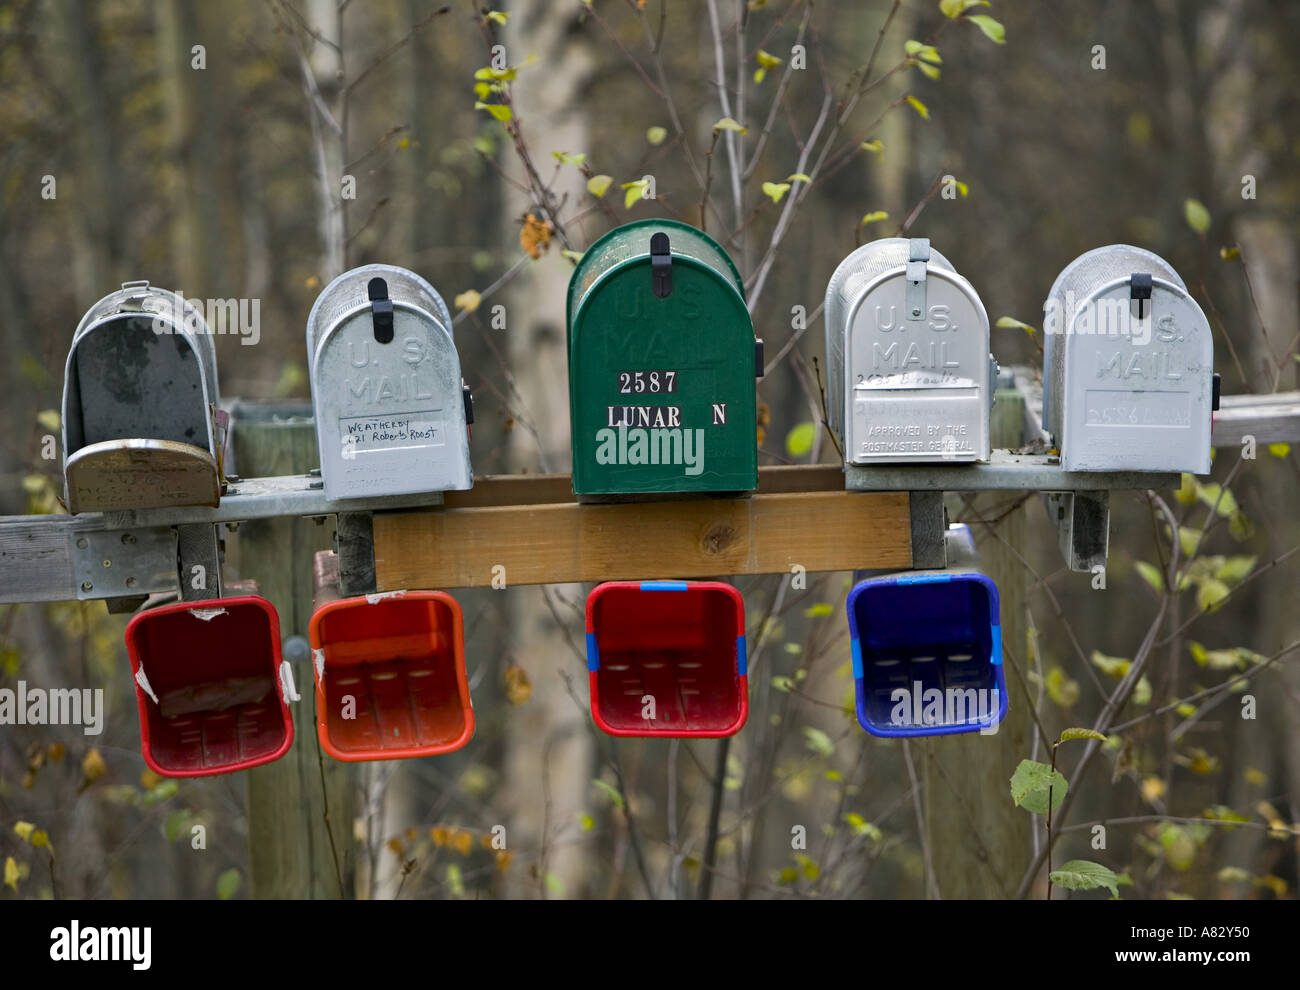 Mailboxes, Alaska, USA - Stock Image